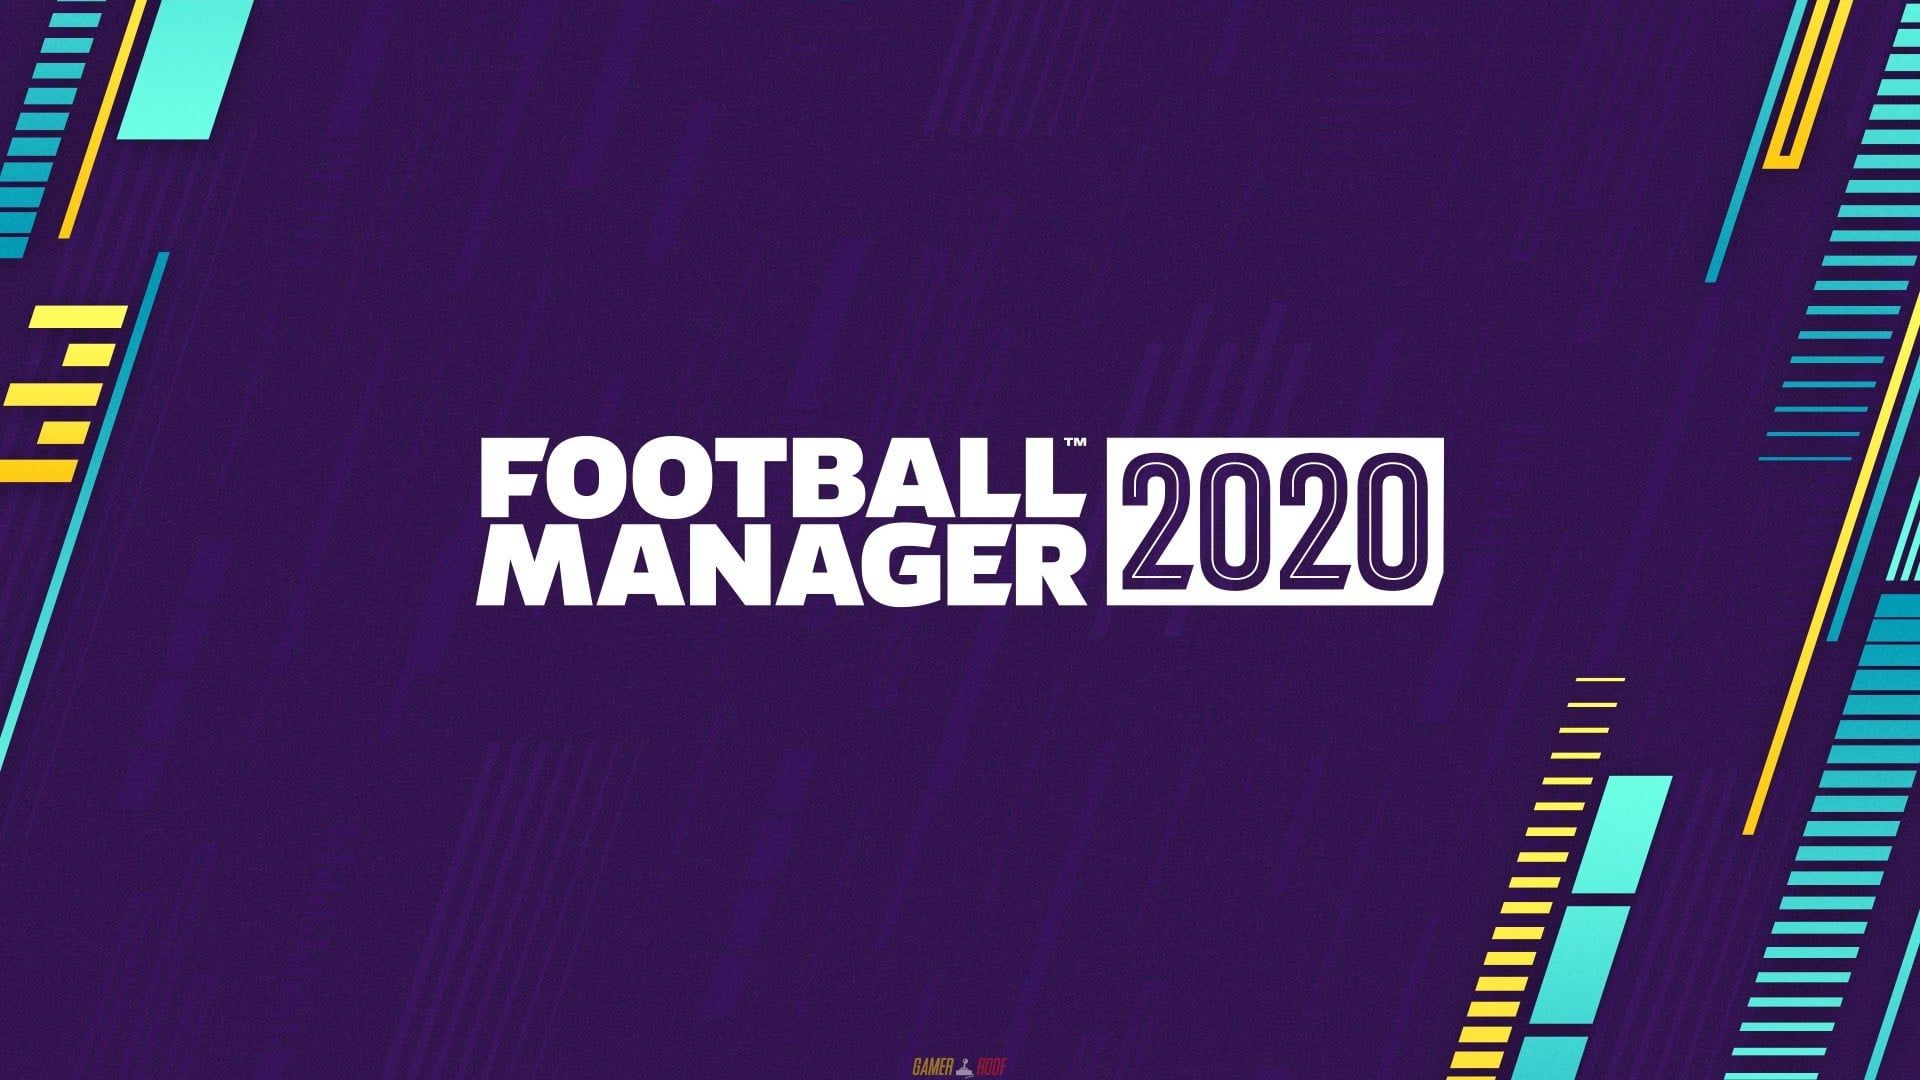 Football Manager 2020 Pc Version Full Game Free Download เลอบรอน เจมส ก ฬา